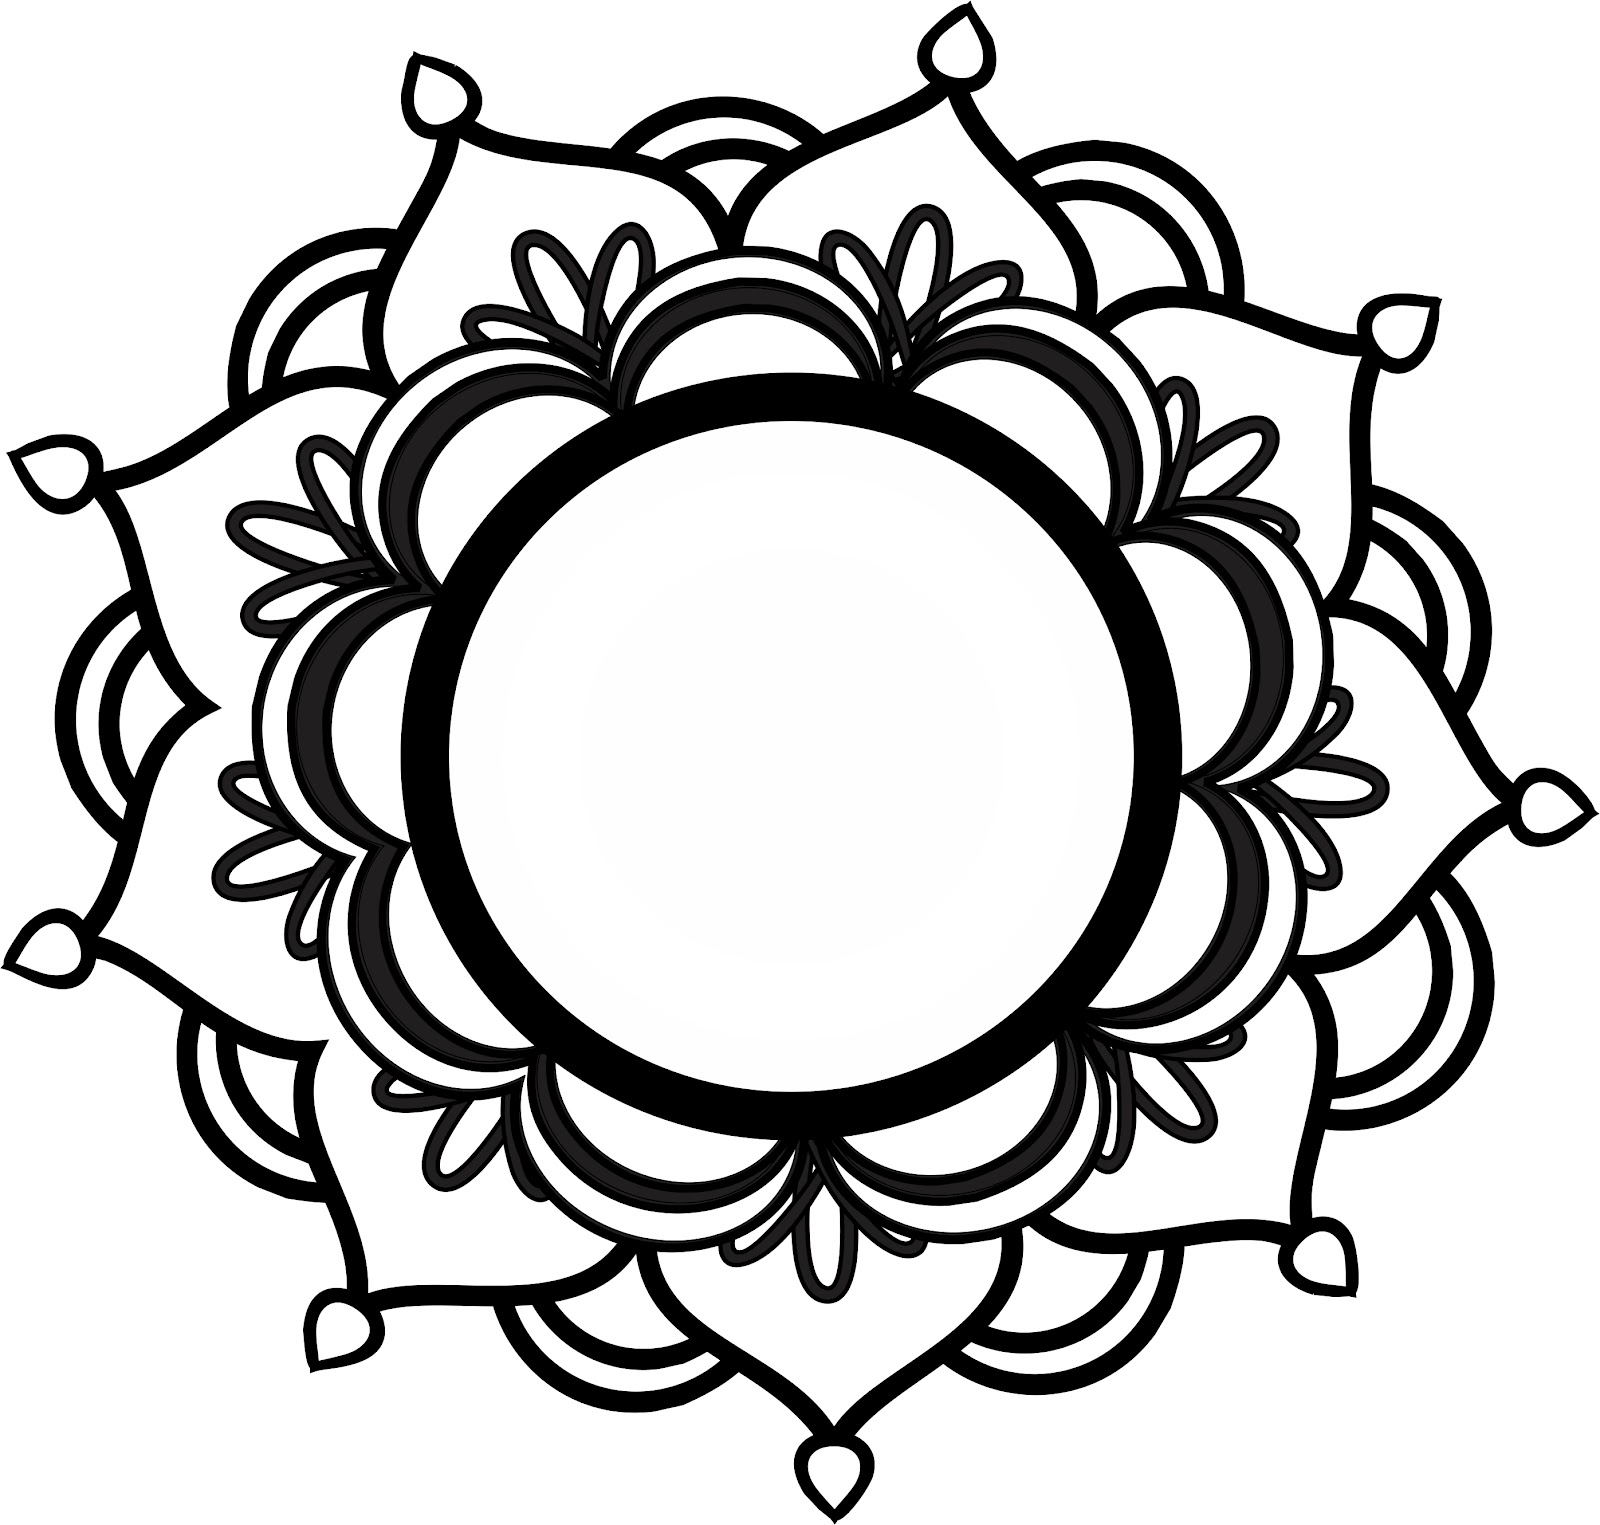 Mandala tattoo drawing at getdrawings free for personal use 1600x1525 amazing outline mandala tattoo design izmirmasajfo